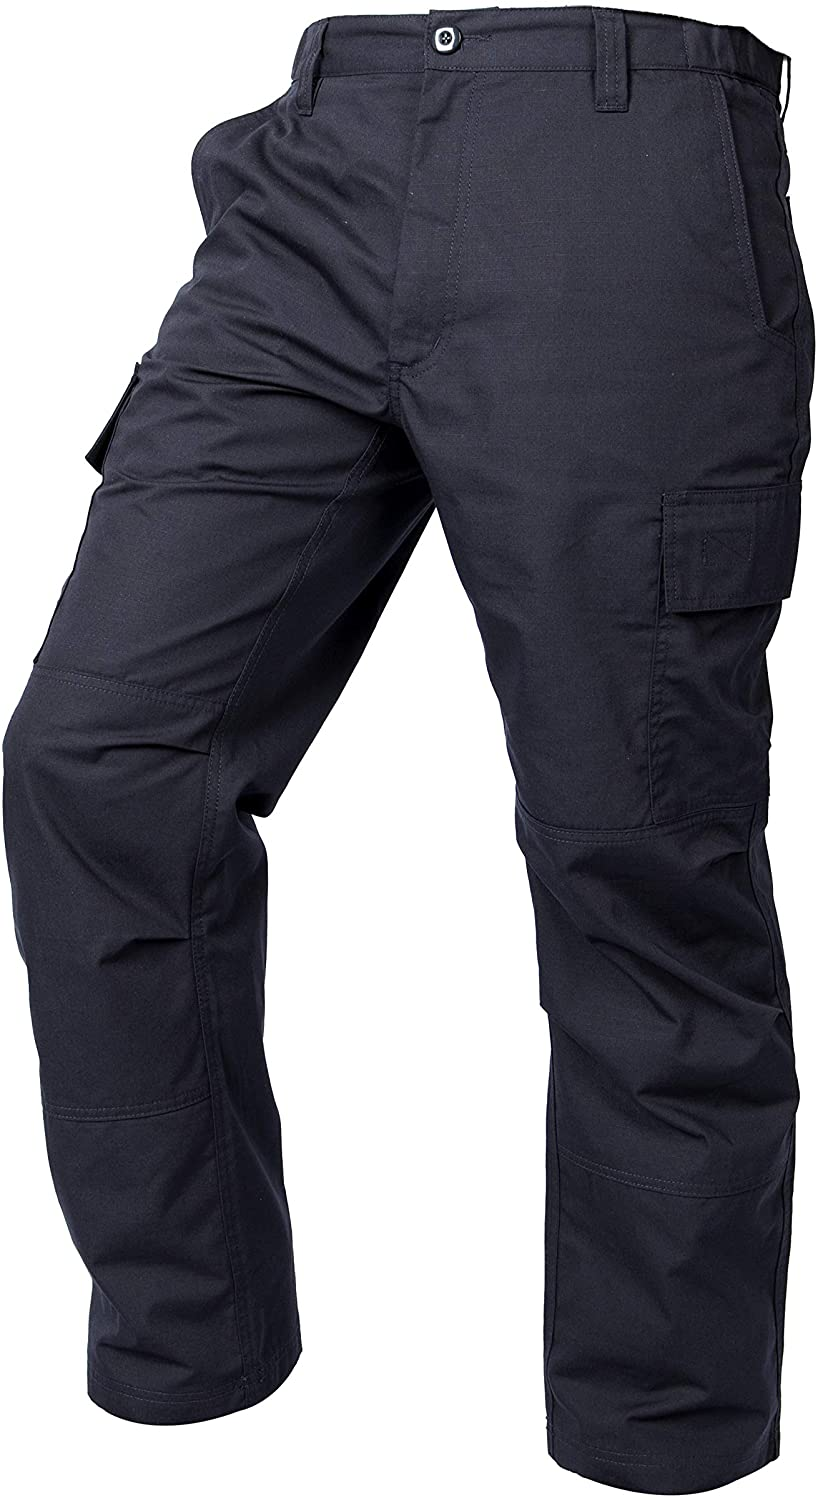 LA Police Gear Mens Core Cargo Lightweight Work Pant: Clothing